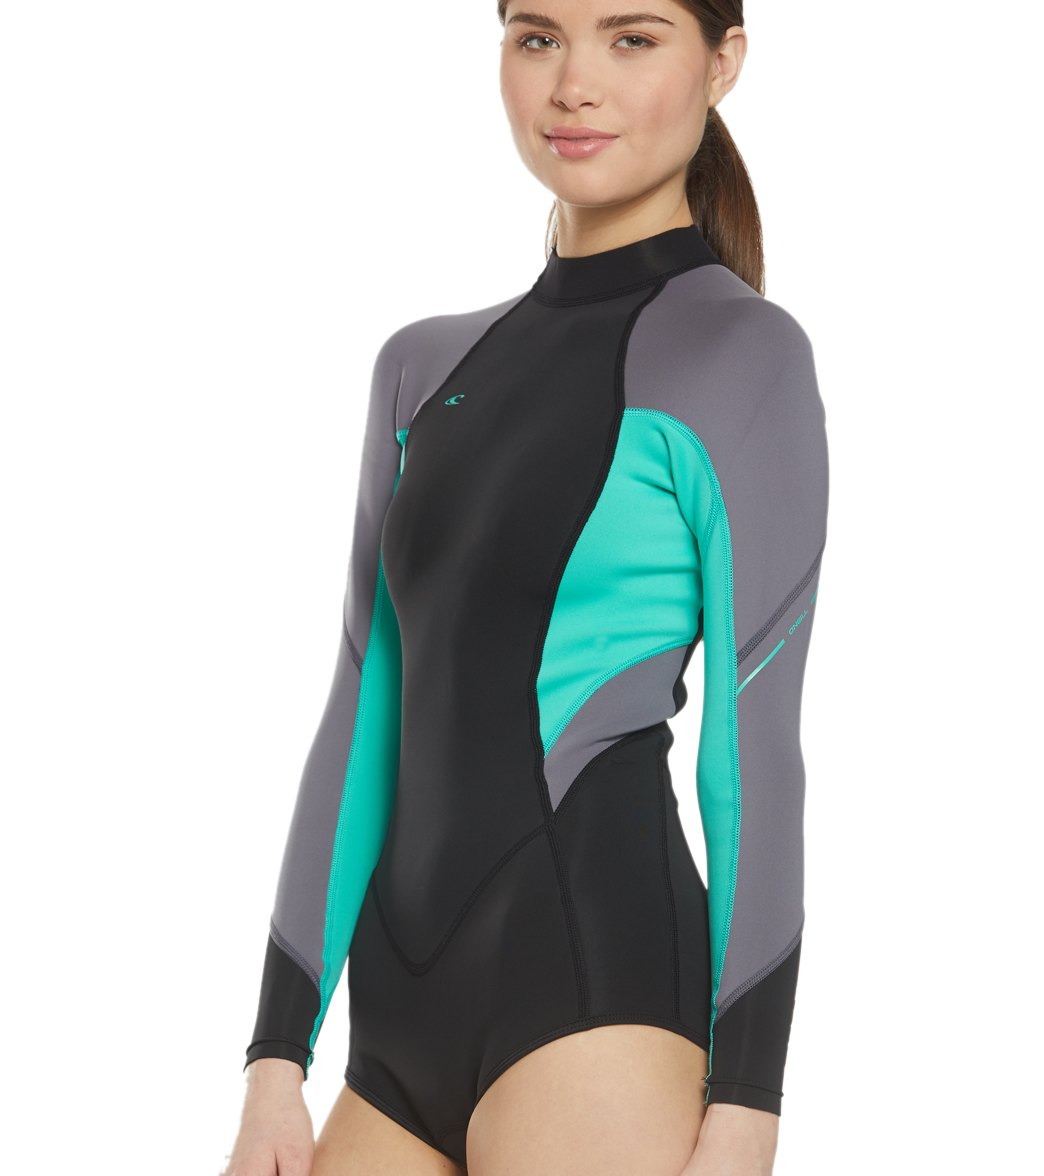 O Neill Women s 2 1MM Bahia Long Sleeve Springsuit Wetsuit at ... 6c2e8a182